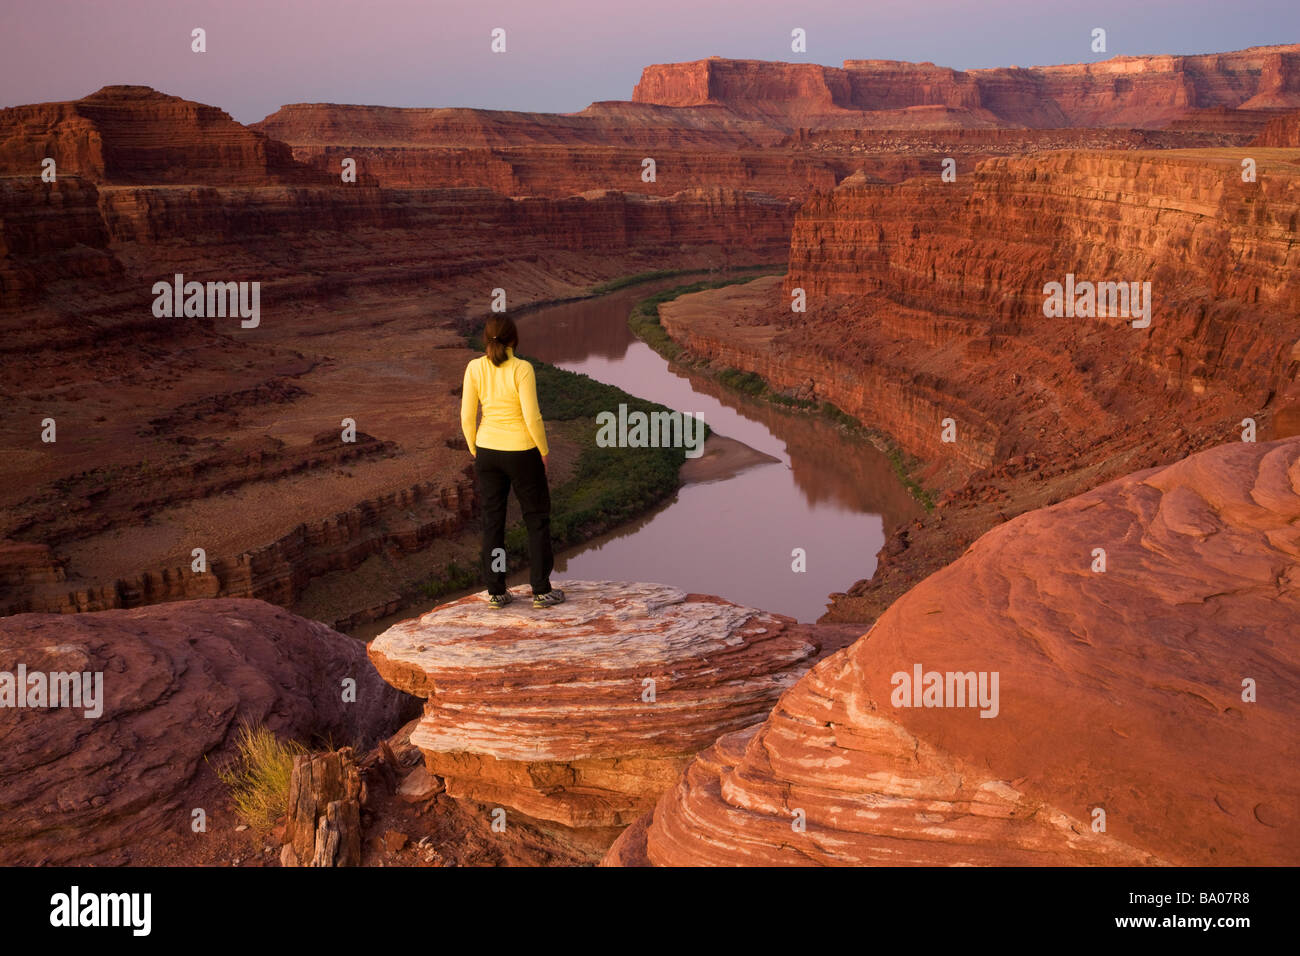 A visitor views the Colorado River from Potash Road Island in the Sky District Canyonlands National Park near Moab - Stock Image